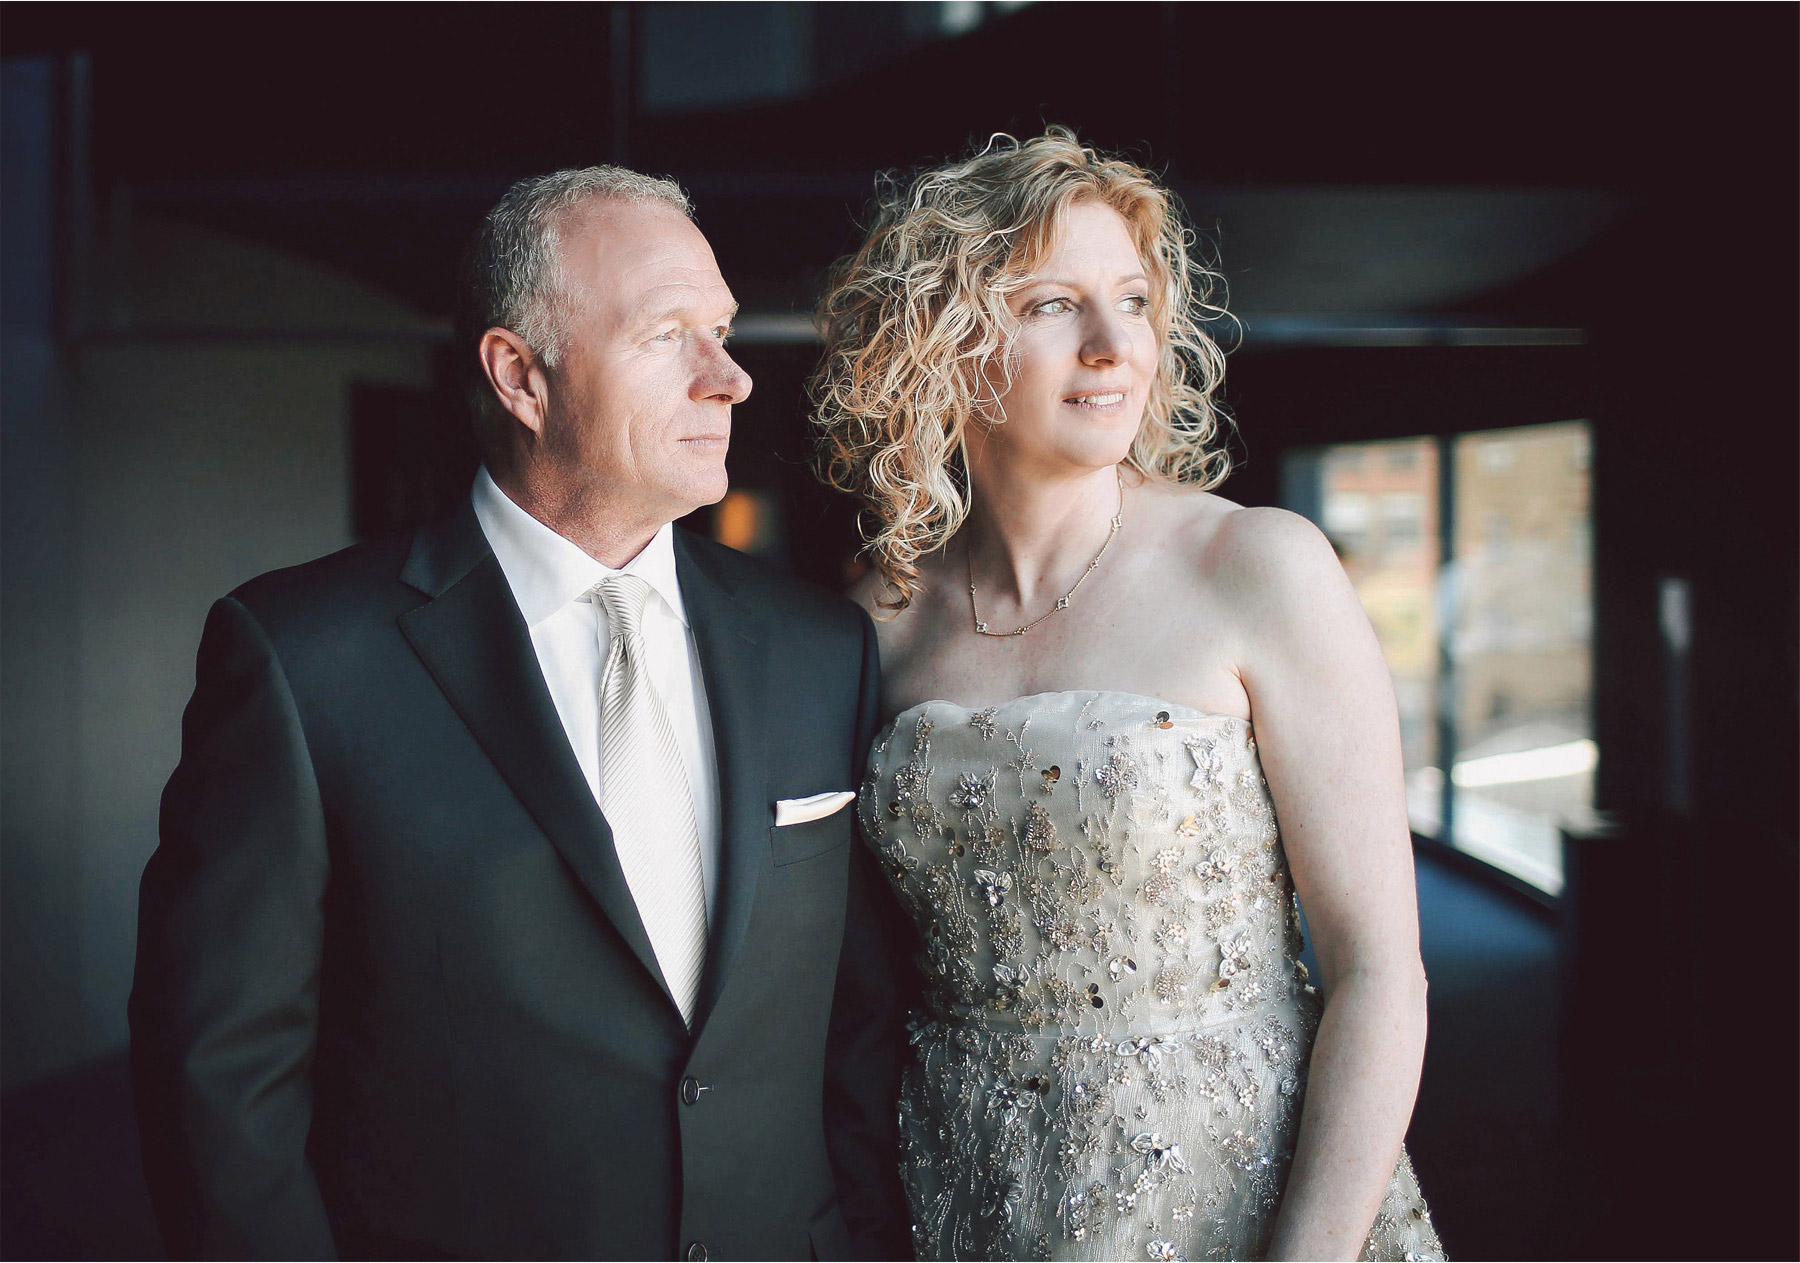 05-Minneapolis-Minnesota-Wedding-Photographer-by-Andrew-Vick-Photography-Spring-Guthrie-Theater-Downtown-Bride-Groom-Vintage-Dannette-and-Darren.jpg